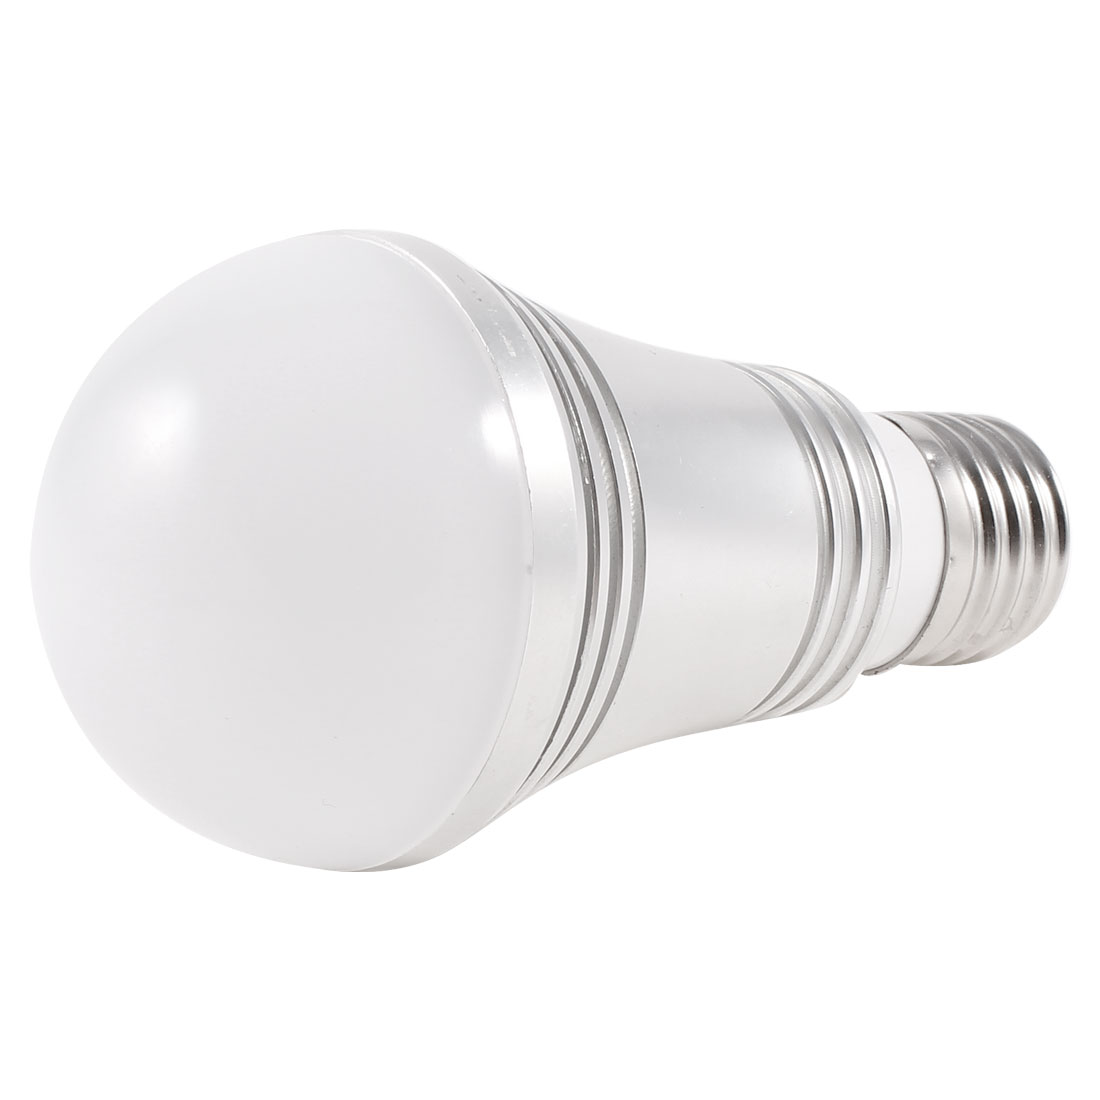 "Indoor Bedroom 7W 220V E27 Socket White LED Globe Ball Bulb 2.2"" Dia"